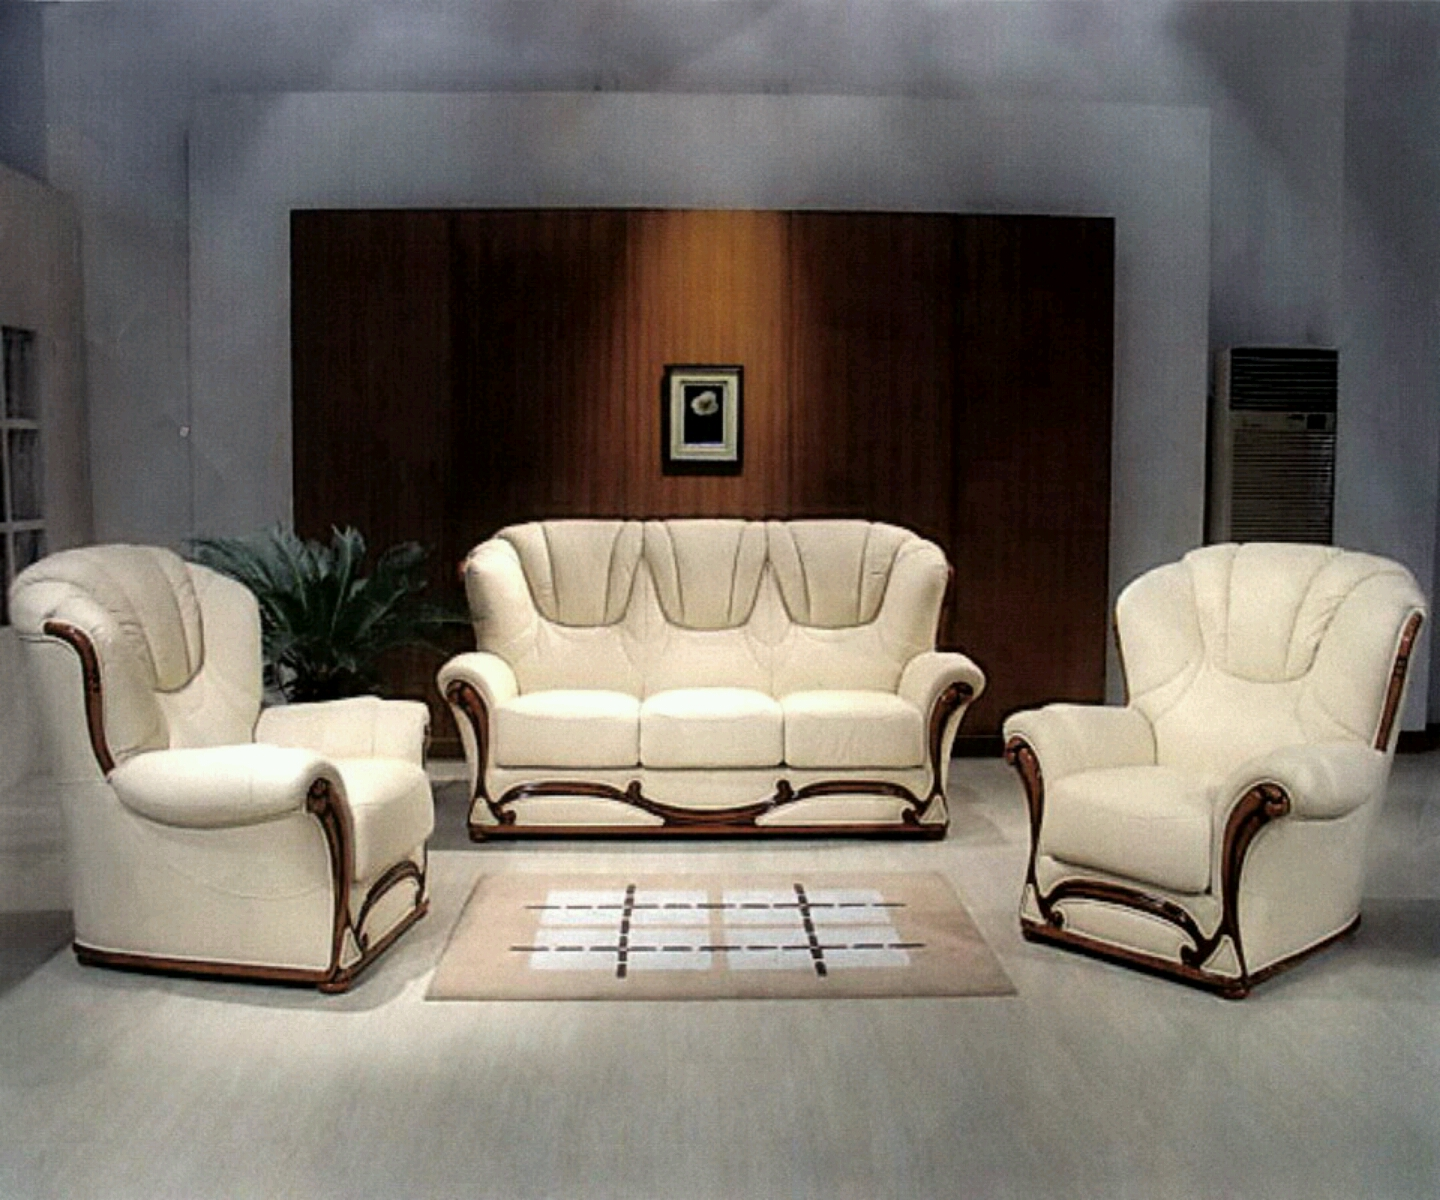 Modern Sofa Chair Designs: H For Heroine: Modern Sofa Set Designs